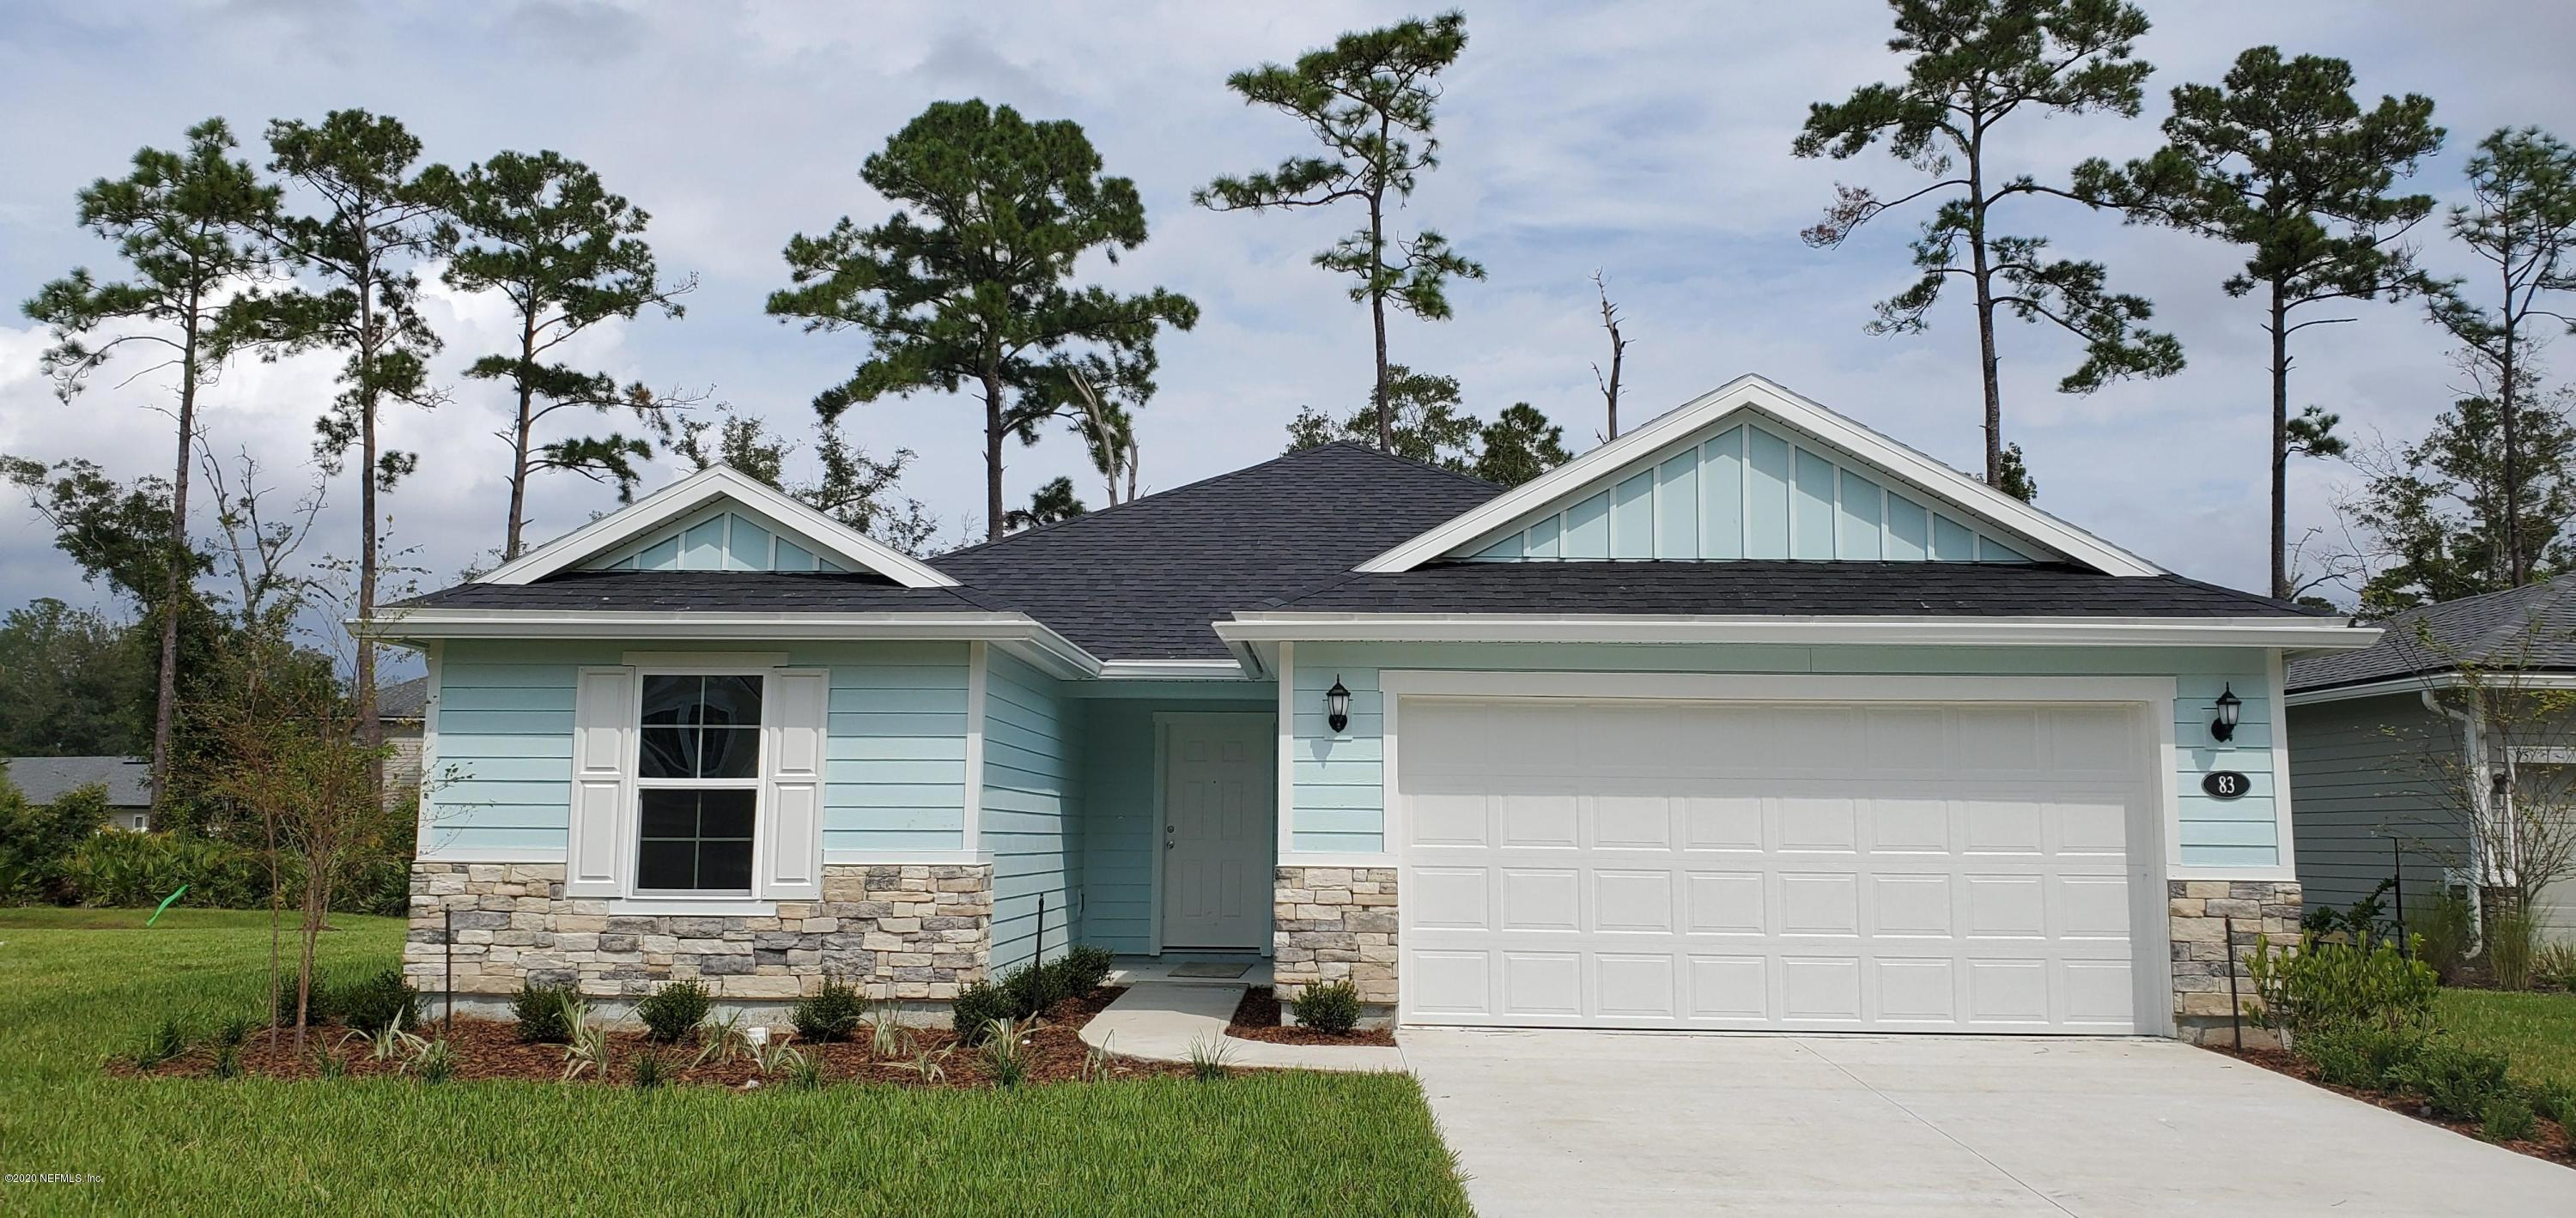 83 RITTBURN, ST JOHNS, FLORIDA 32259, 3 Bedrooms Bedrooms, ,2 BathroomsBathrooms,Residential,For sale,RITTBURN,1080973